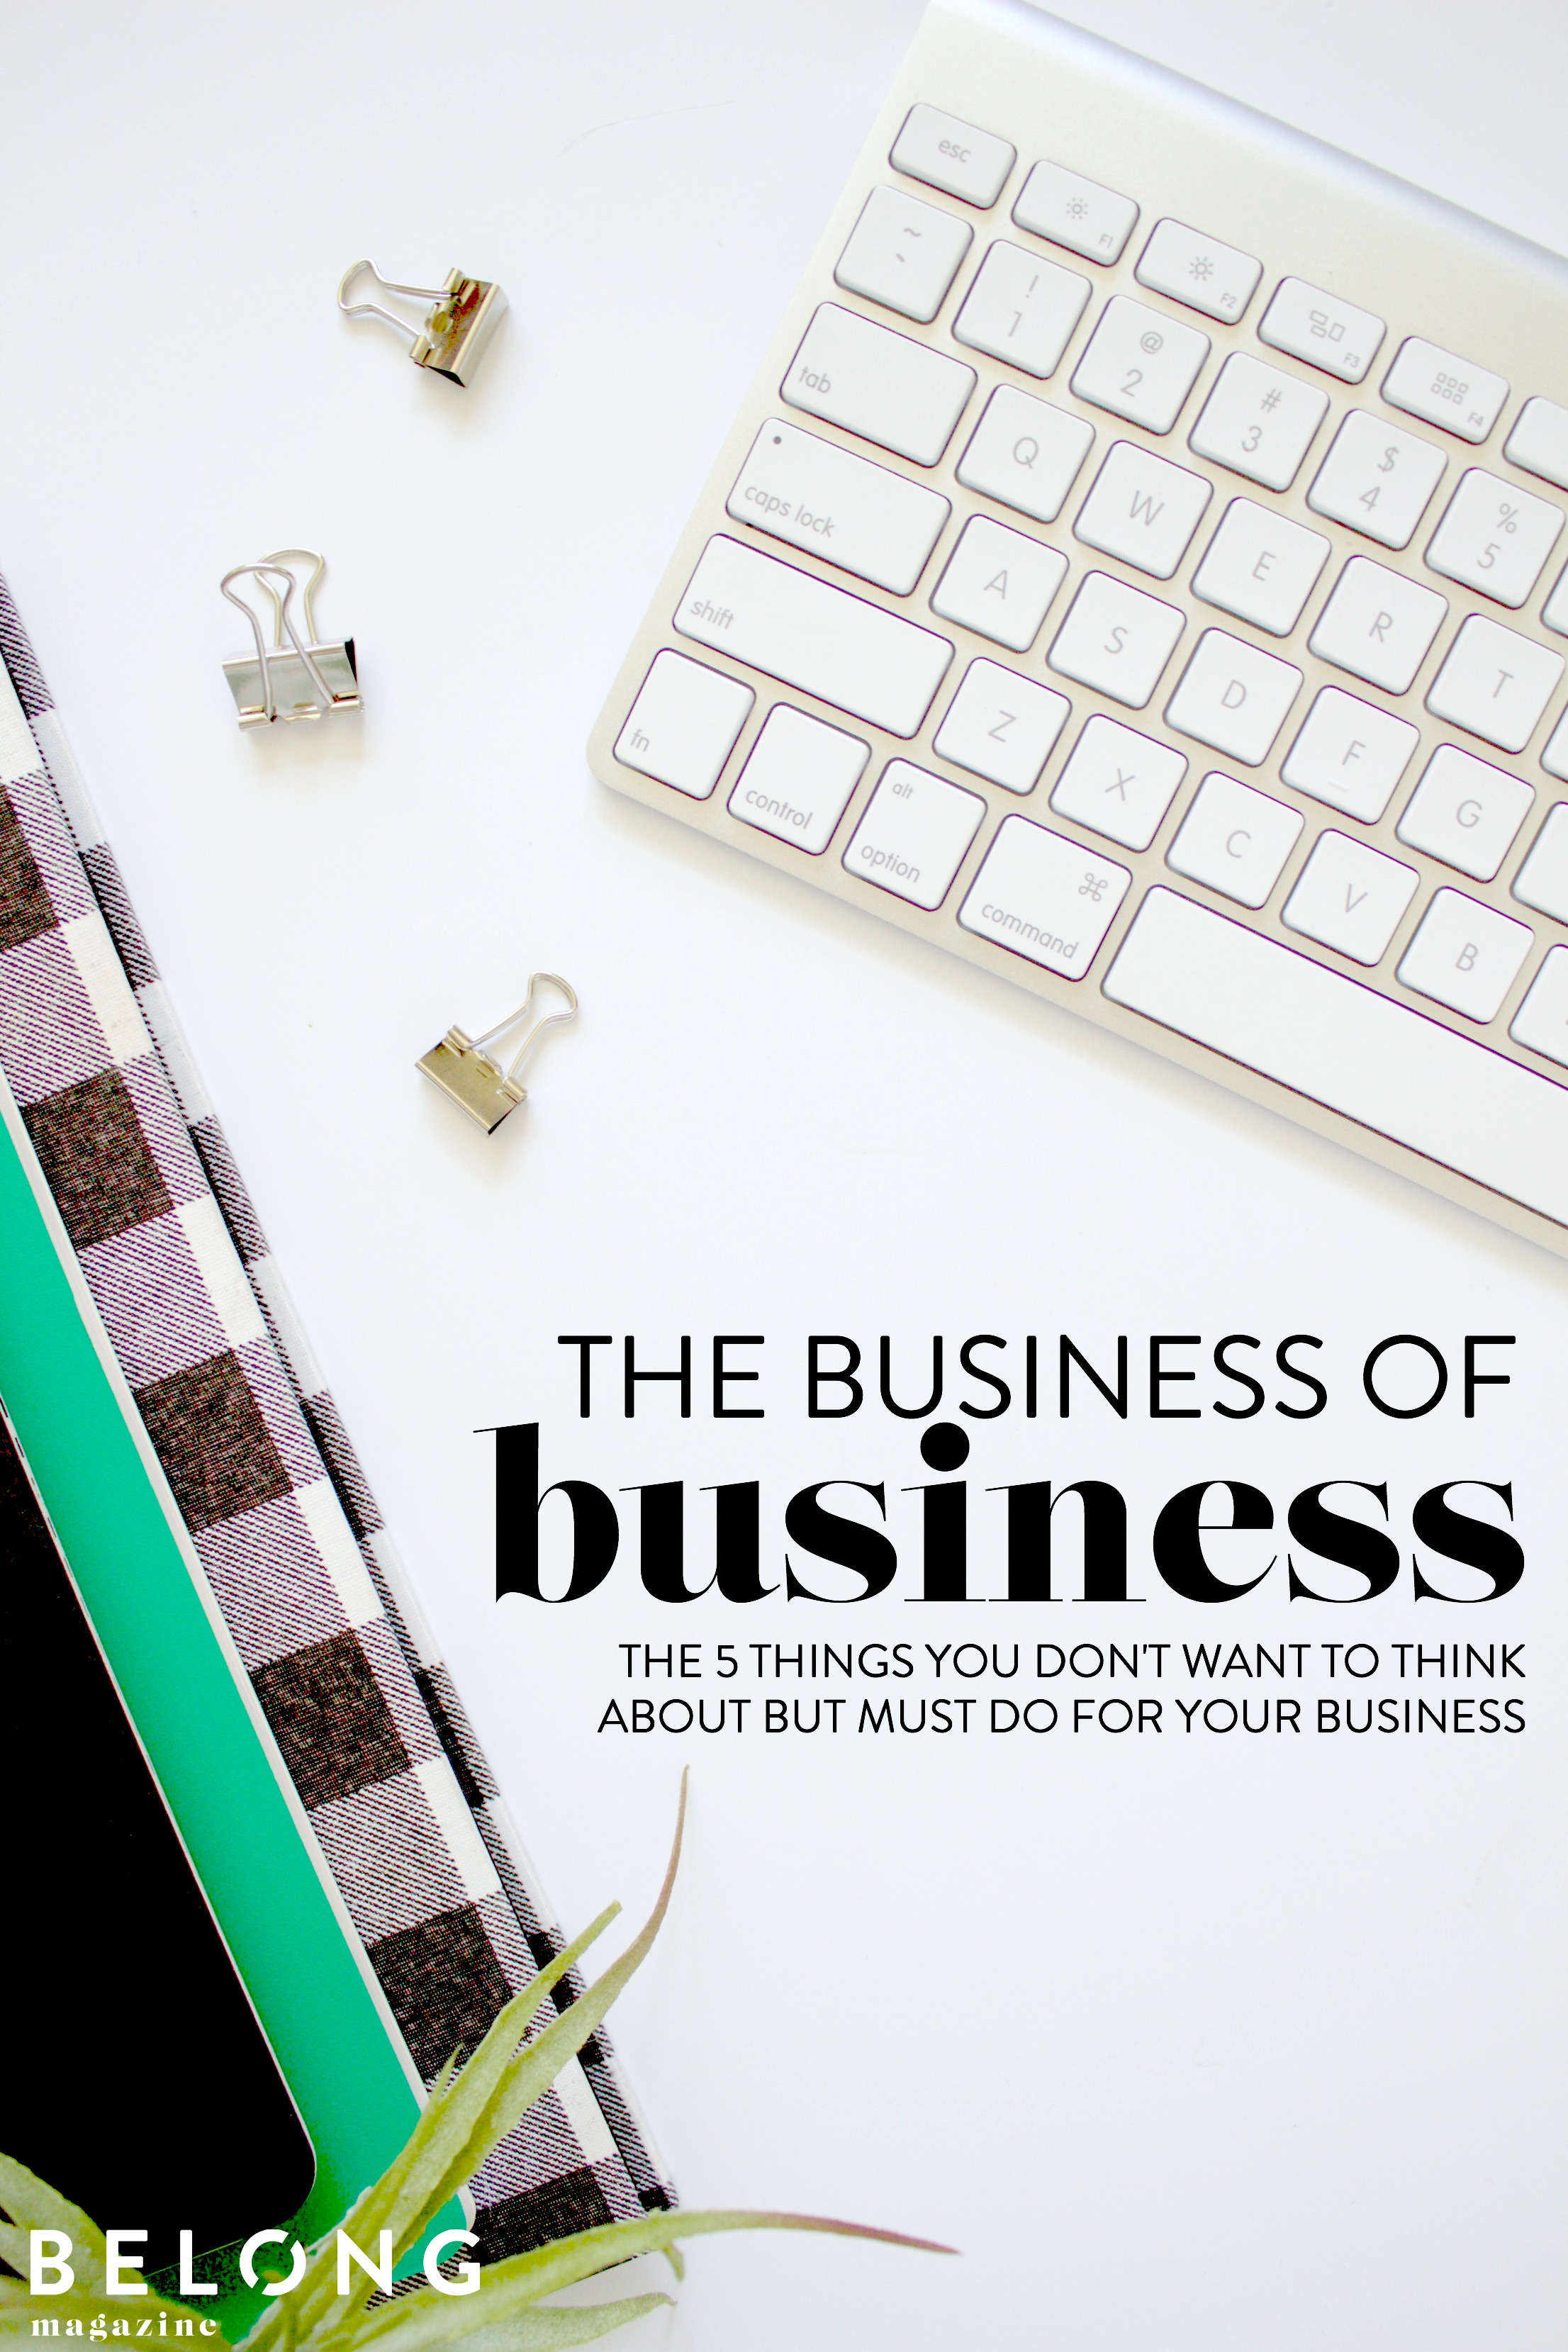 the business of business-2.jpg